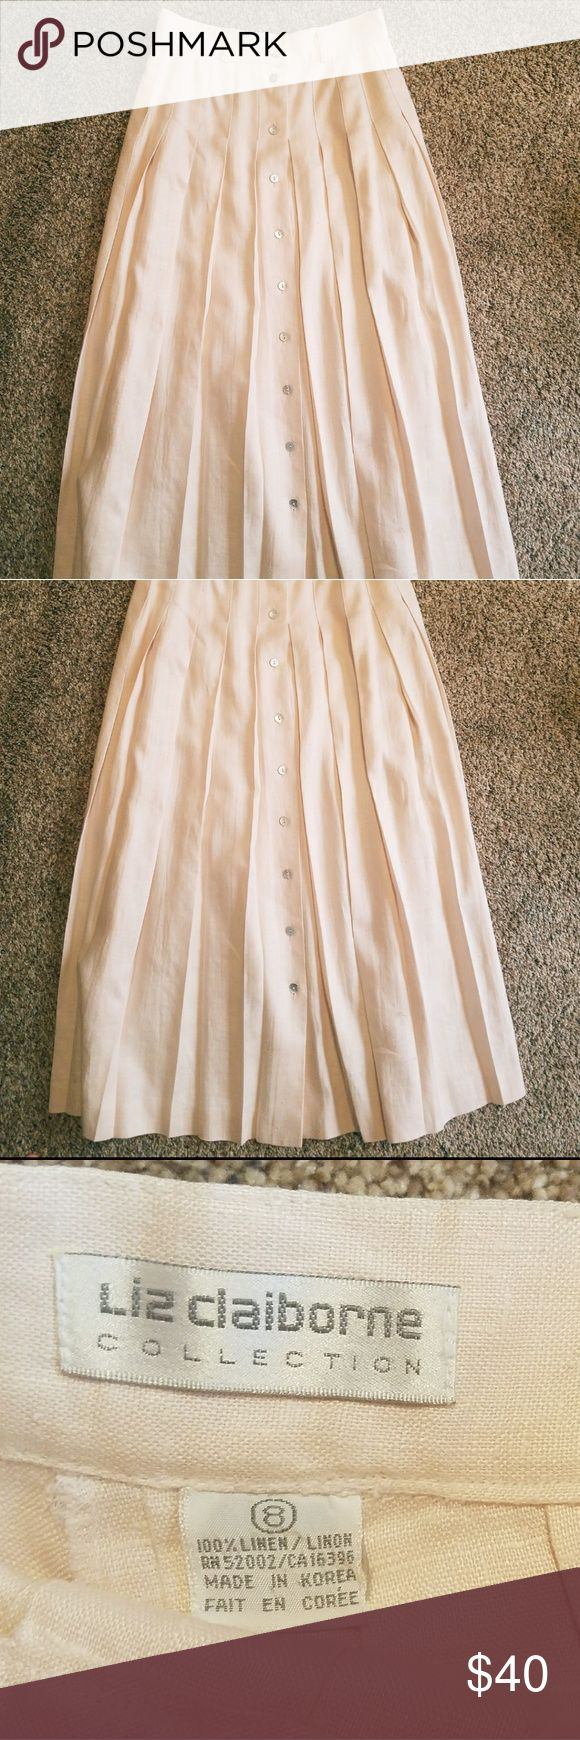 Vintage Linen midi skirt Light pink skirt. 35 inches long and diameter of waste is about 14 inches. Vintage Liz Claiborne Linen midi skirt. Real mother of pearl buttons. This skirt is from the 1980s and well preserved. Very open to offers and possible trades  Check out the link in my bio for how to wear one Vintage Skirts Midi